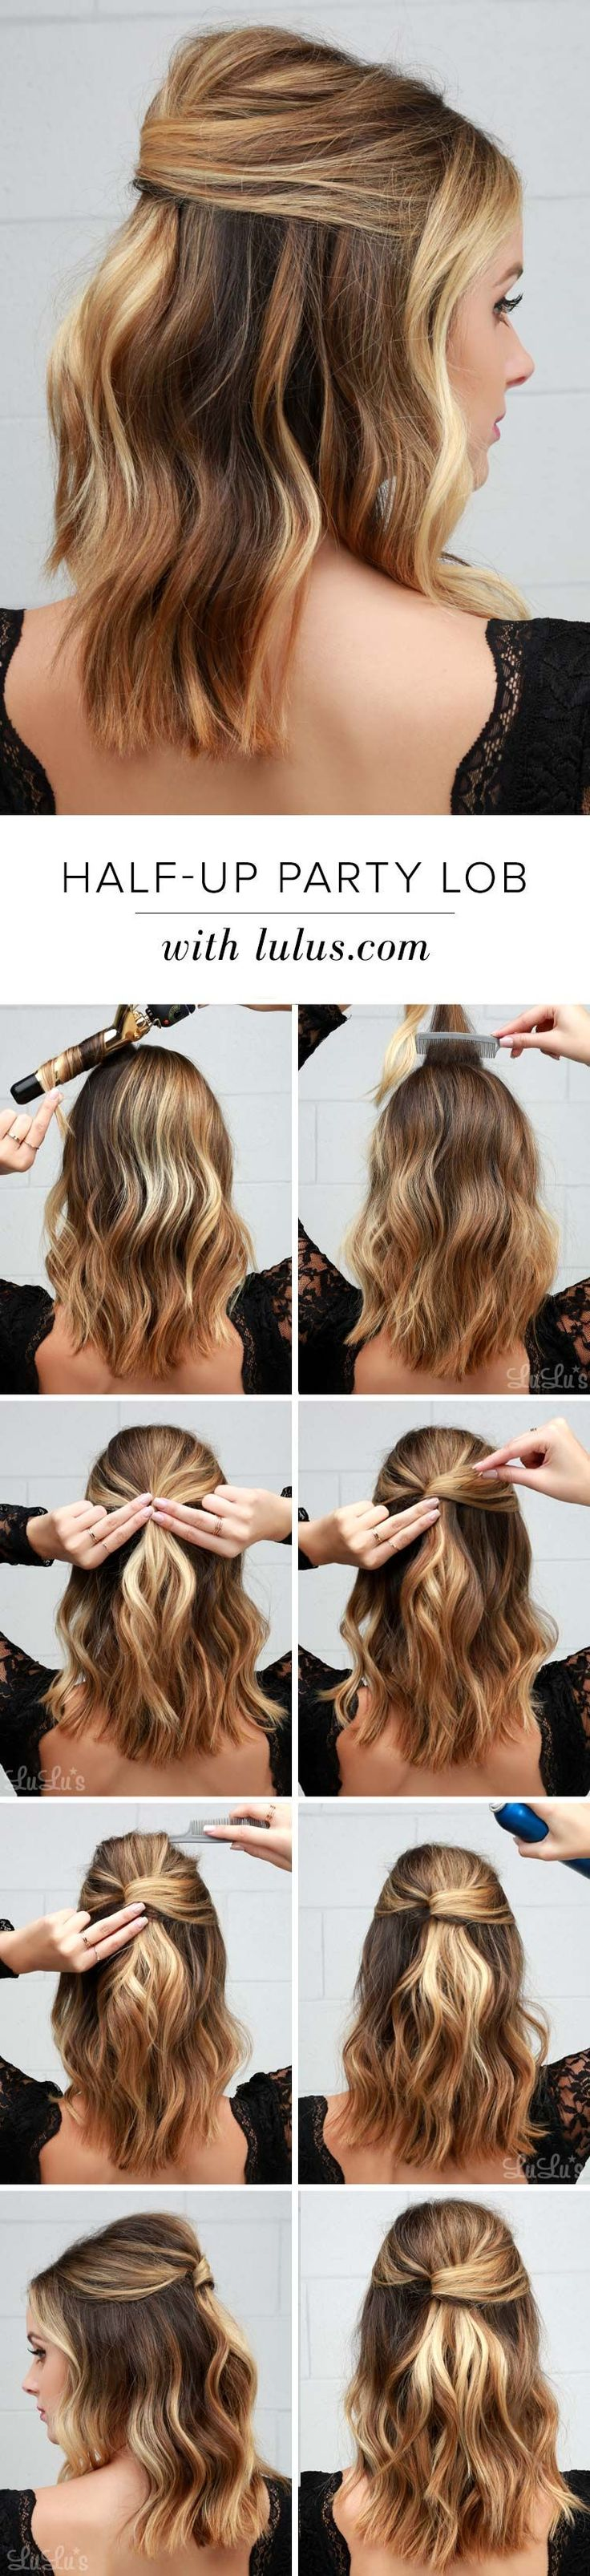 Best 25 Long bobs ideas on Pinterest